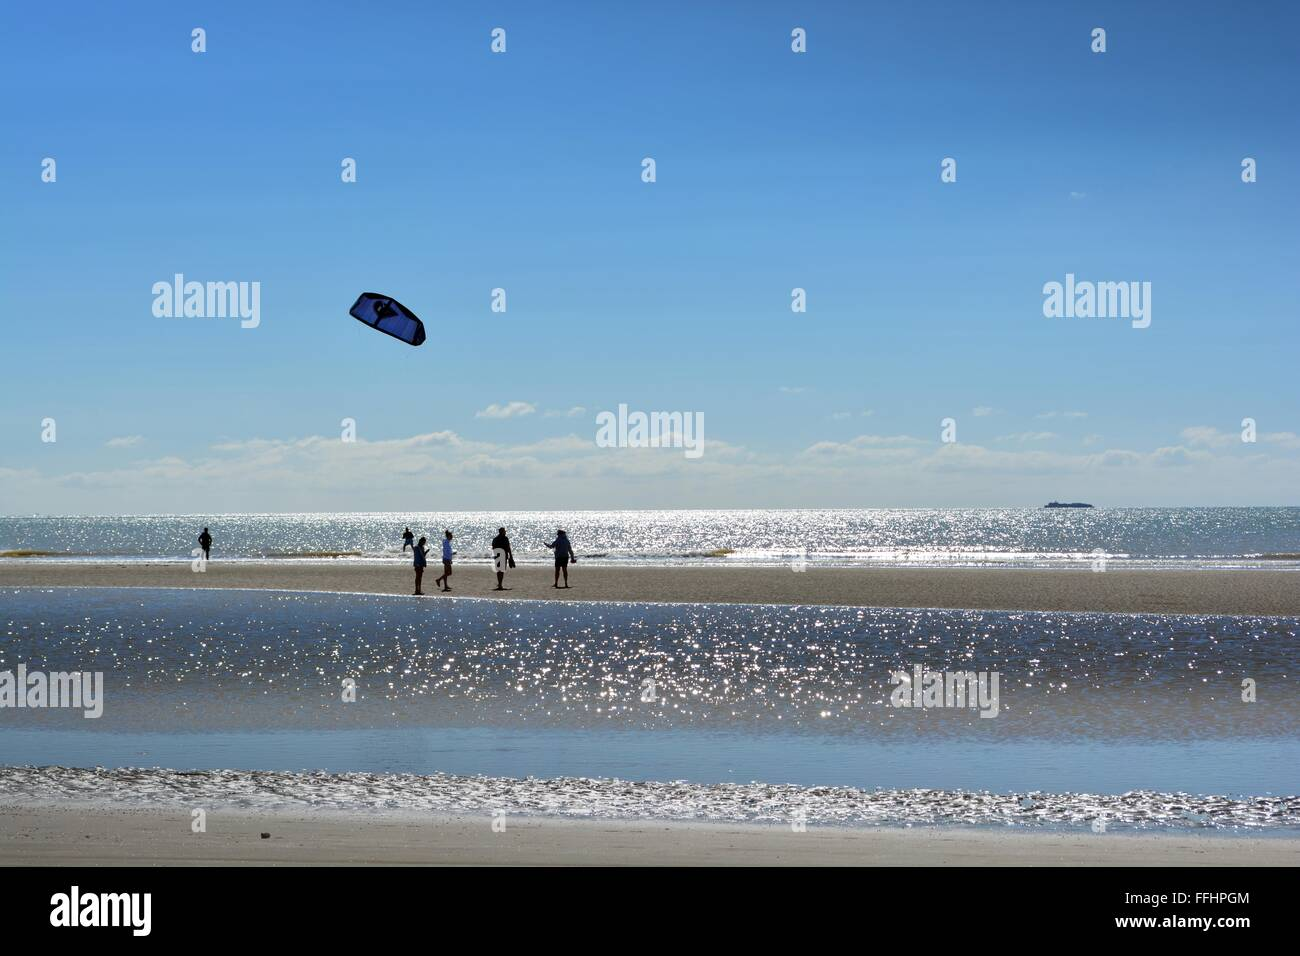 watching kite surfers at low tide above a sparkling sea in Camber Sands on the South coast, Sussex, UK - Stock Image